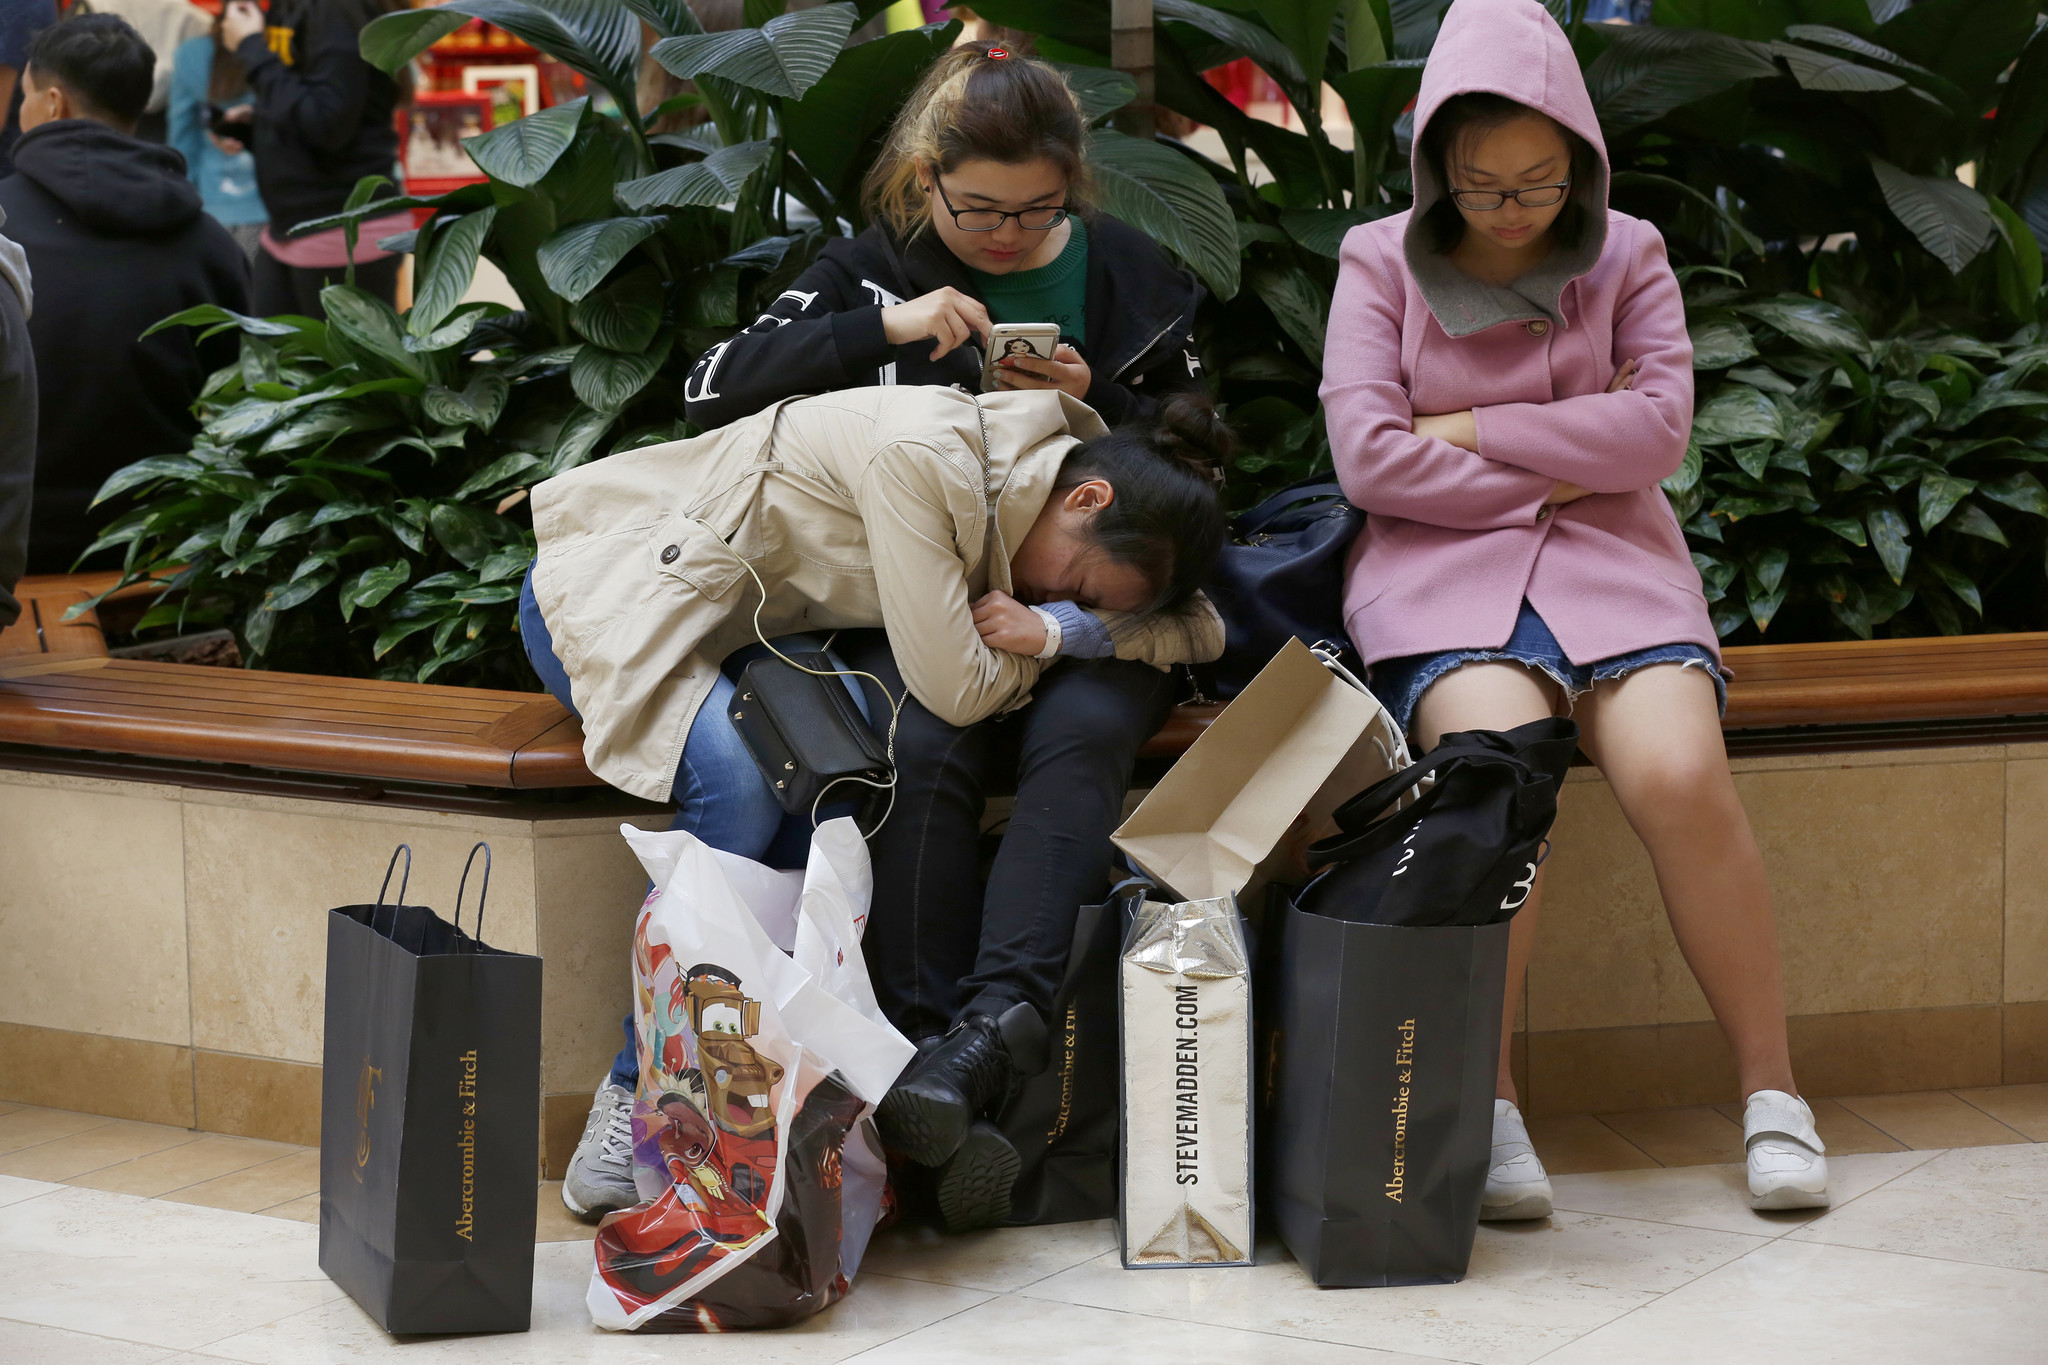 b40bd107623 ... showing a reluctance to spend lavishly at the start of the holiday  shopping season. Last month